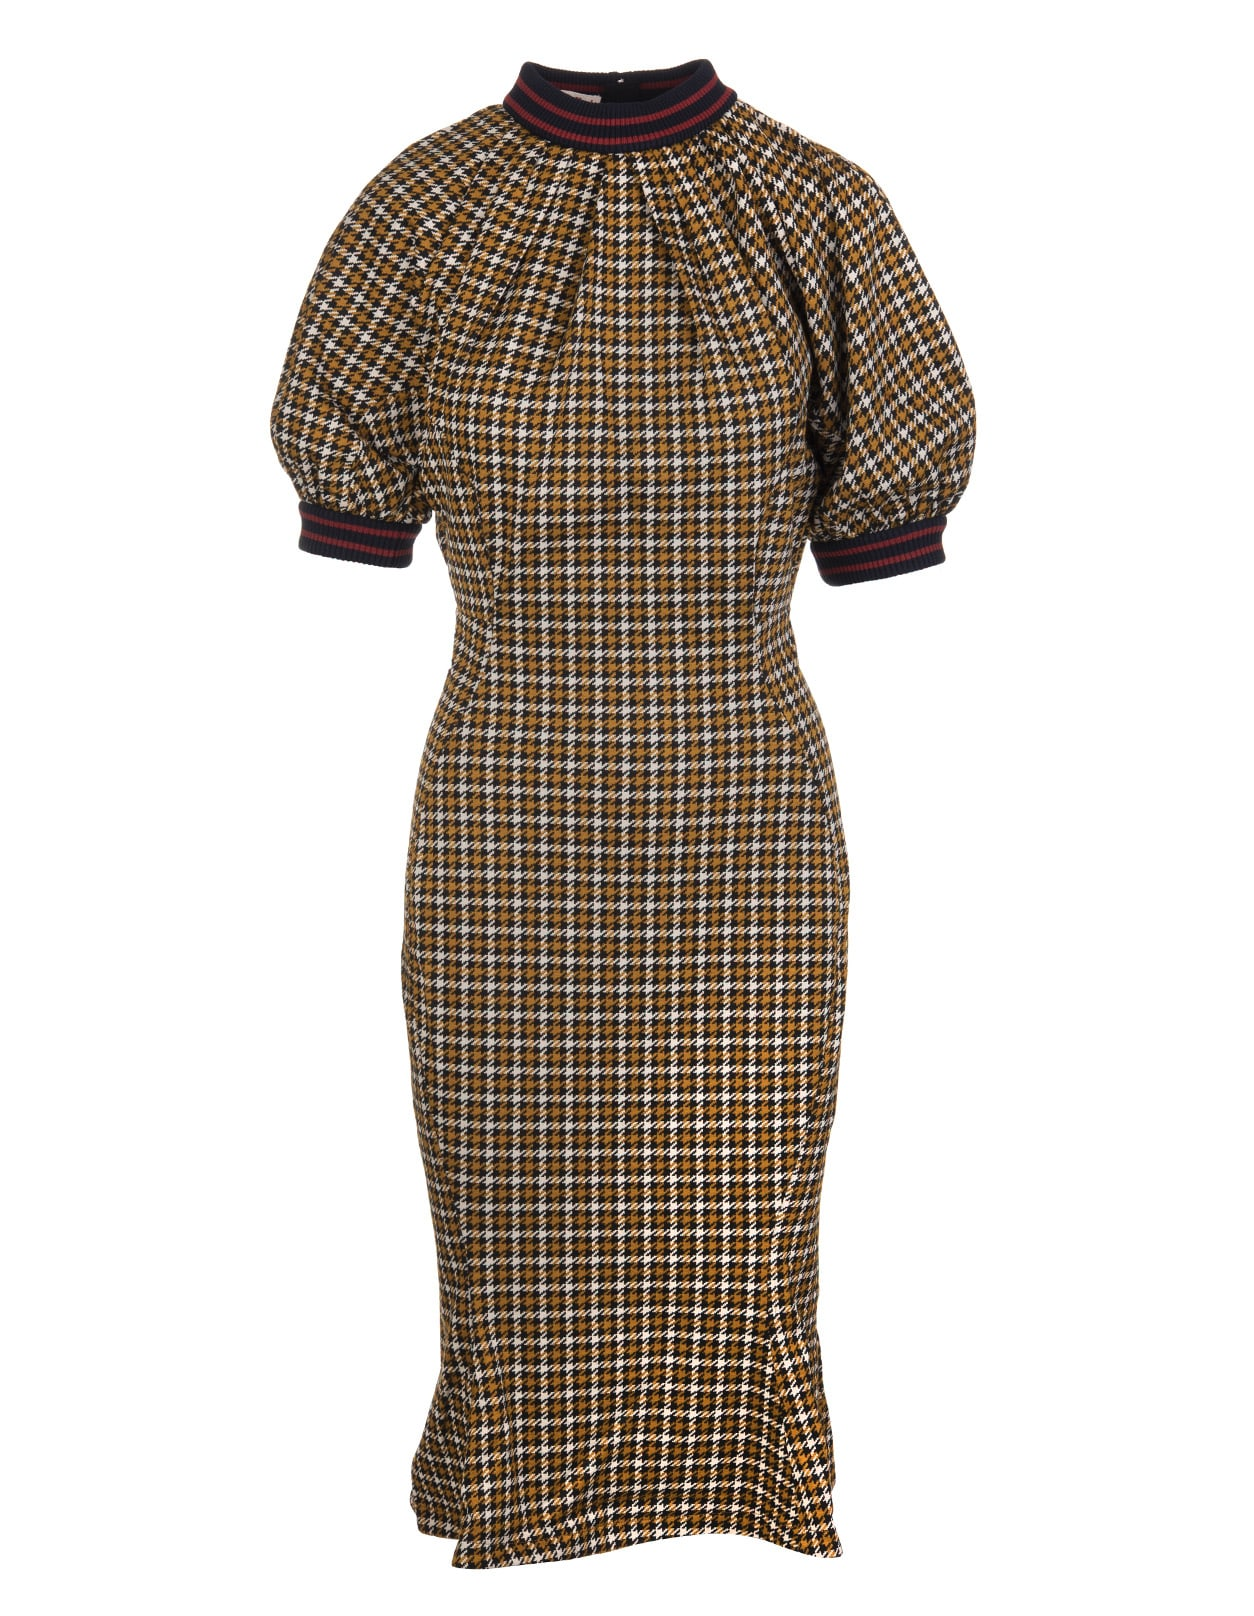 Buy Marni Mermaid Midi Dress With Black, Ivory And Camel Pied De Poule Pattern online, shop Marni with free shipping